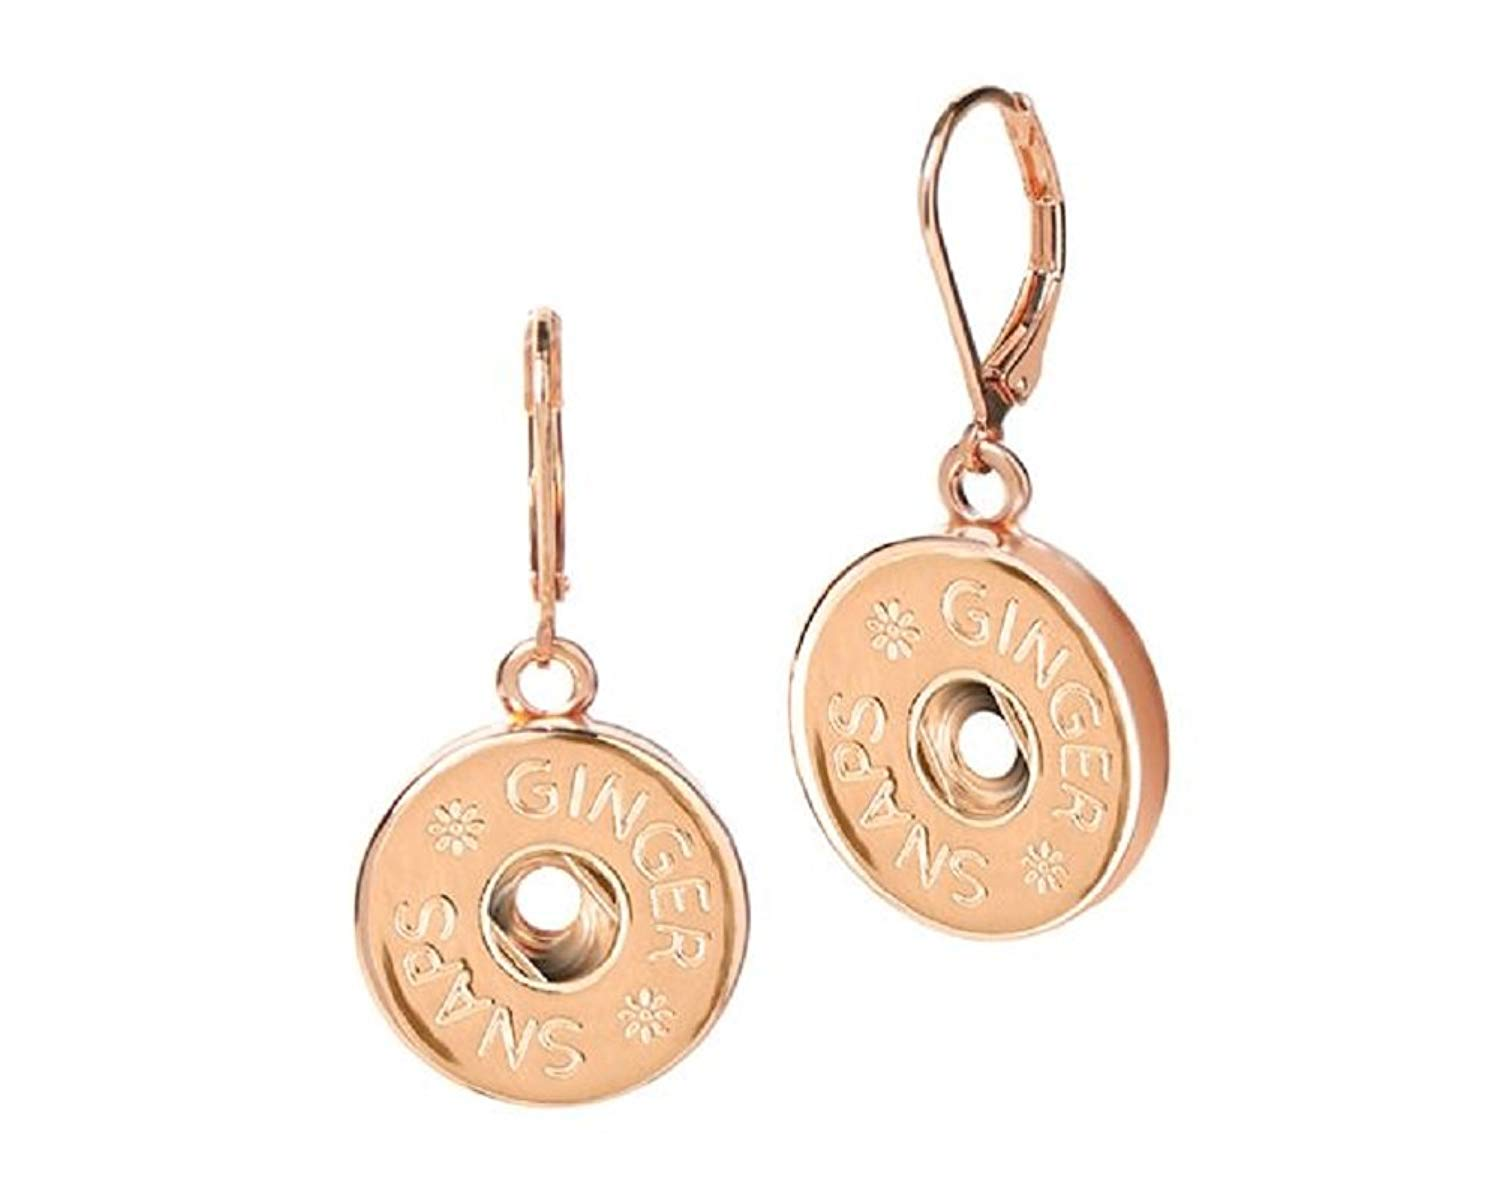 Ginger Snaps Rose (Simulated) Gold Leverback Earrings (Standard Size) SN96-01 Interchangeable Jewelry